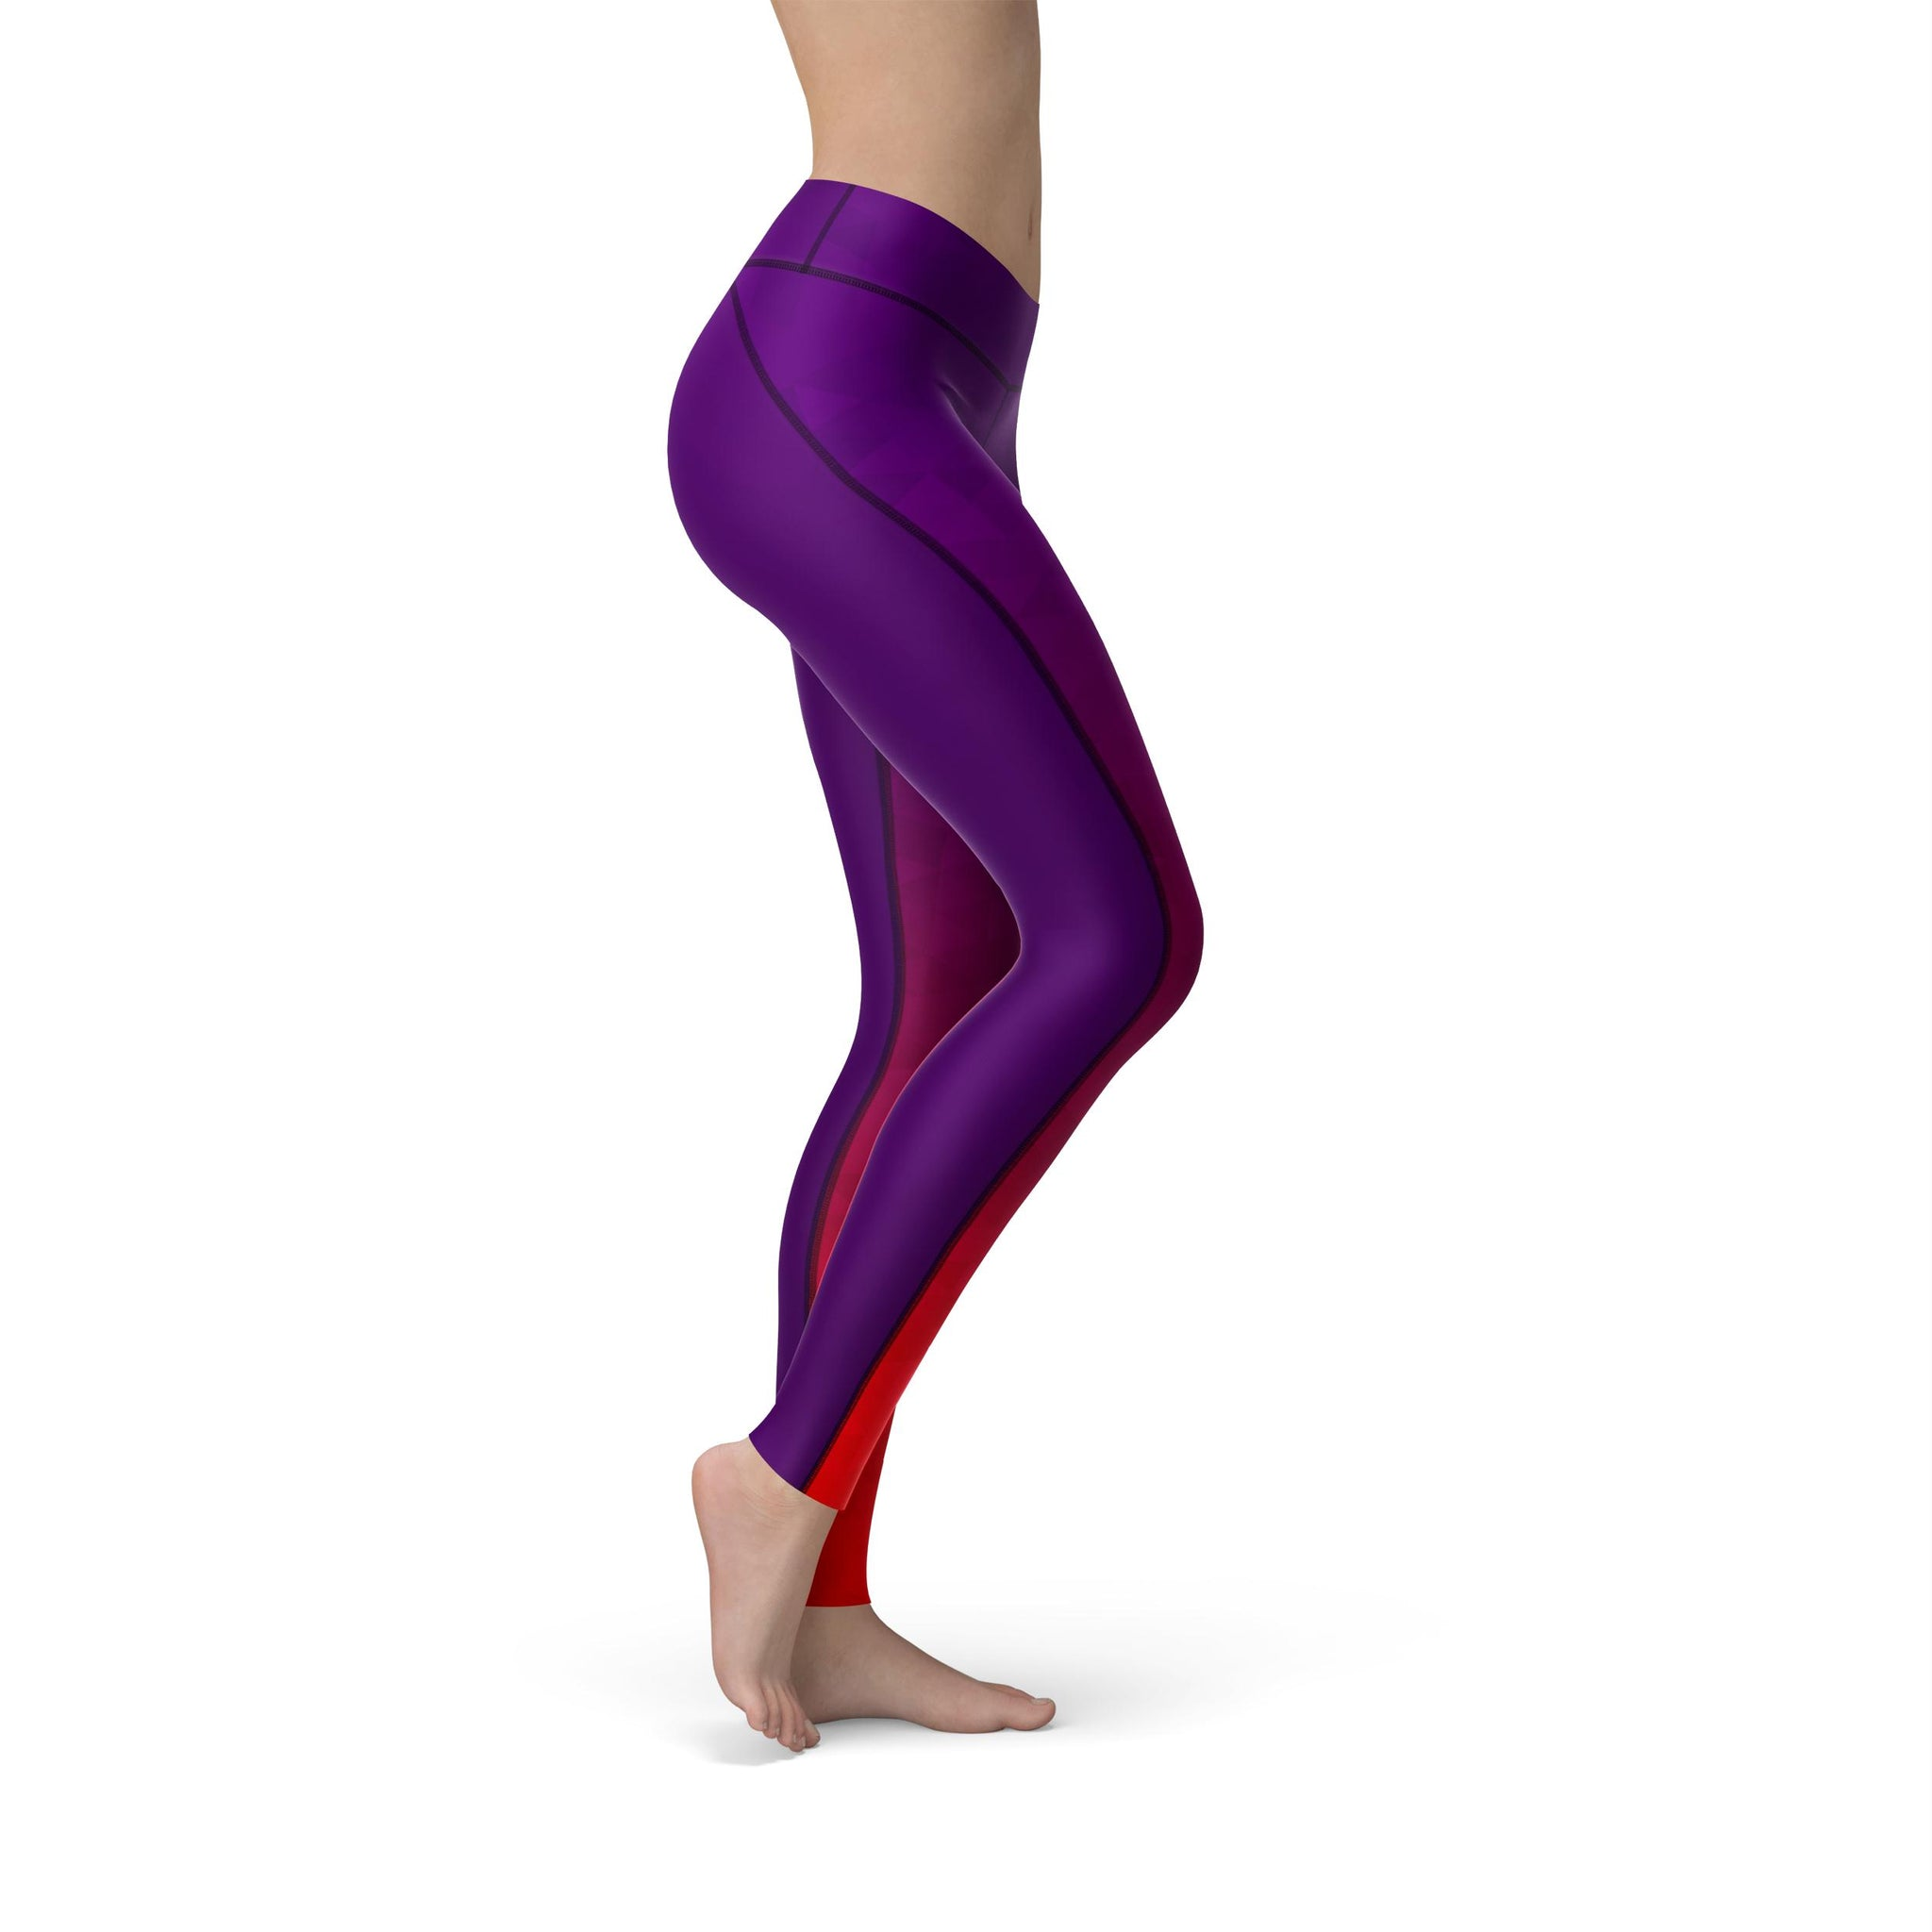 High-Waist Prism Fusion Purple Yoga Pants